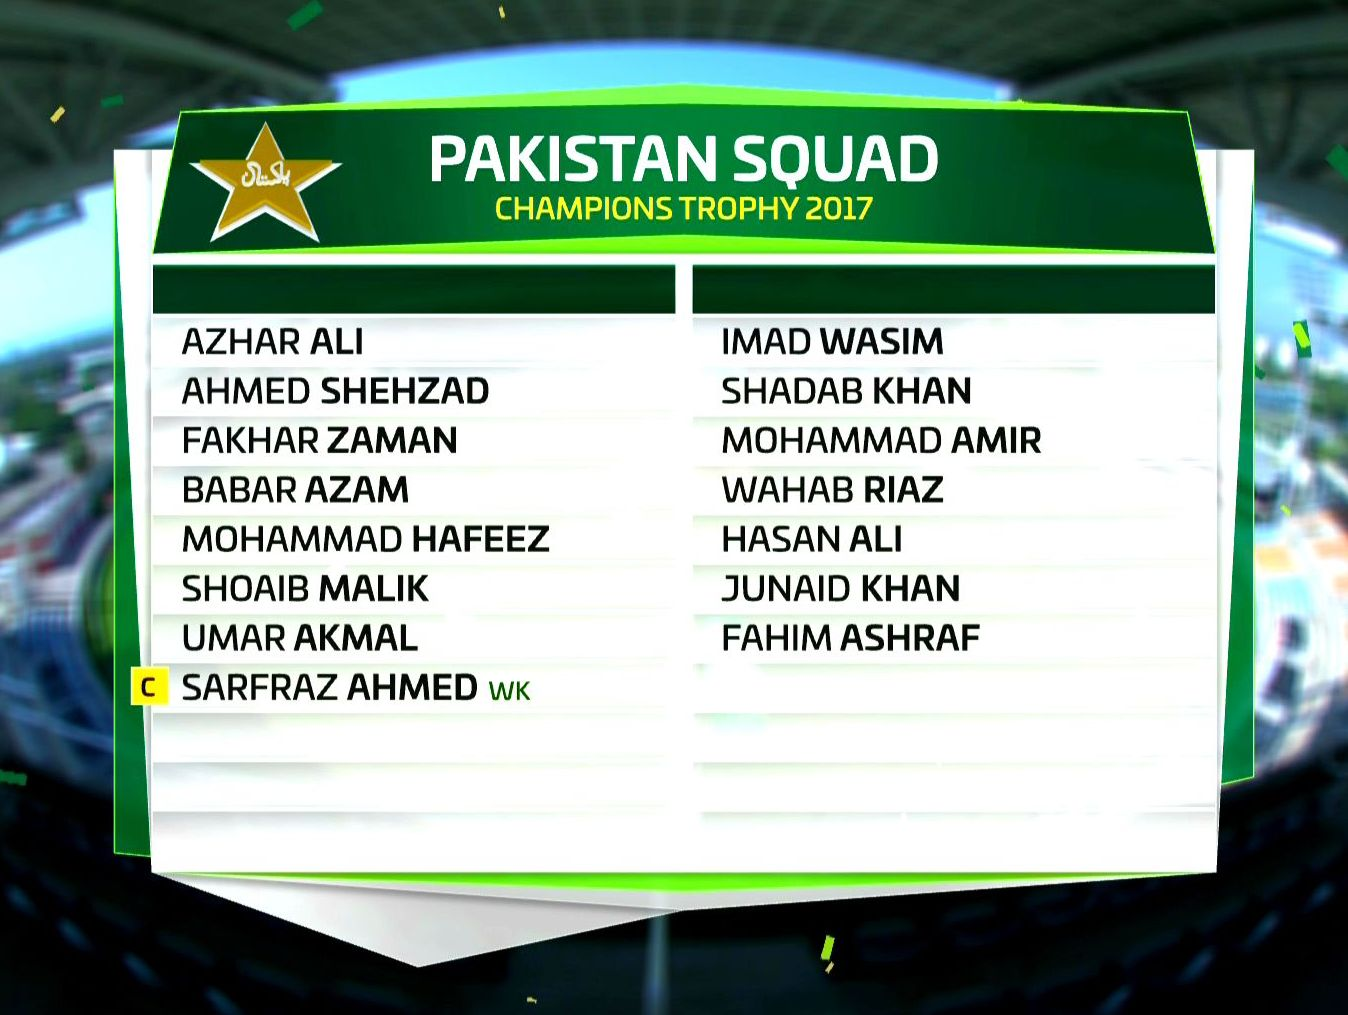 LAHORE Azhar Ali And Umar Akmal Make A Comeback Into Pakistans ODI Team As The Squad For ICC Champions Trophy Was Announced On Tuesday